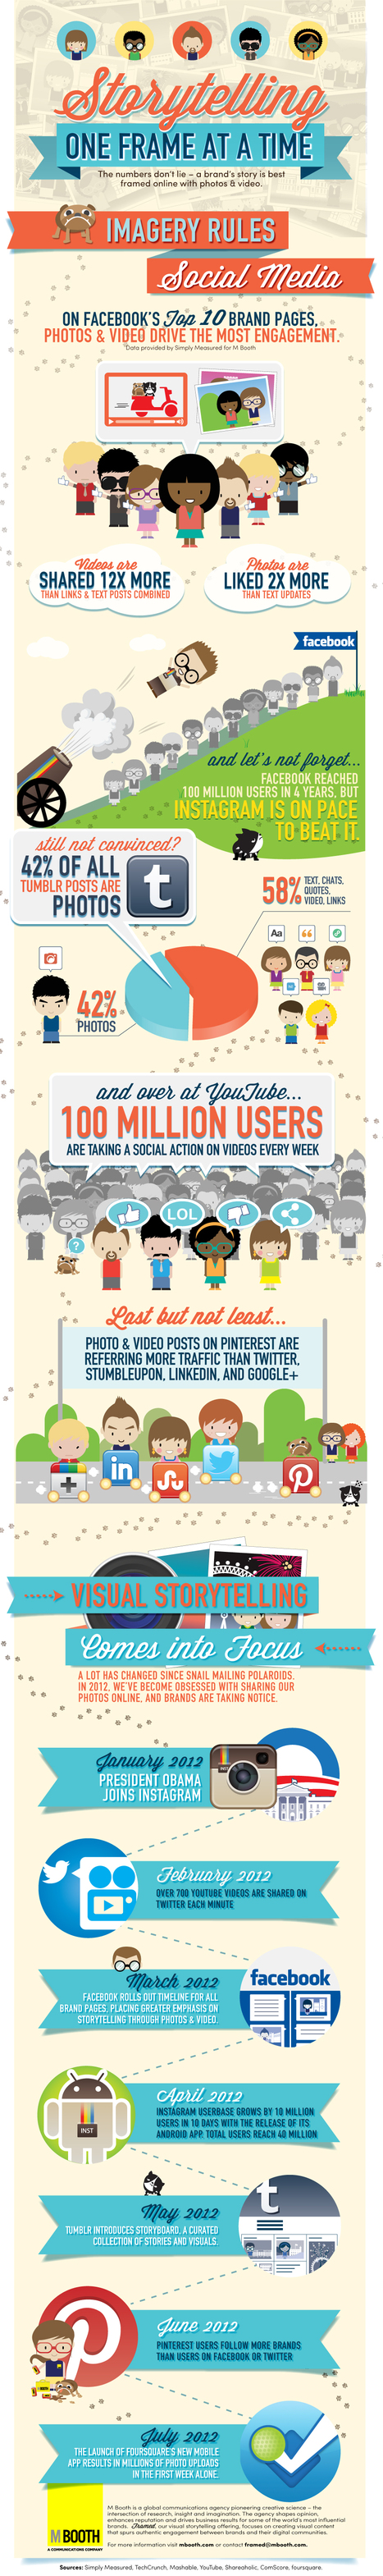 The Facts and Figures about the Power of Visual Content - Infographic | Infographic news | Scoop.it